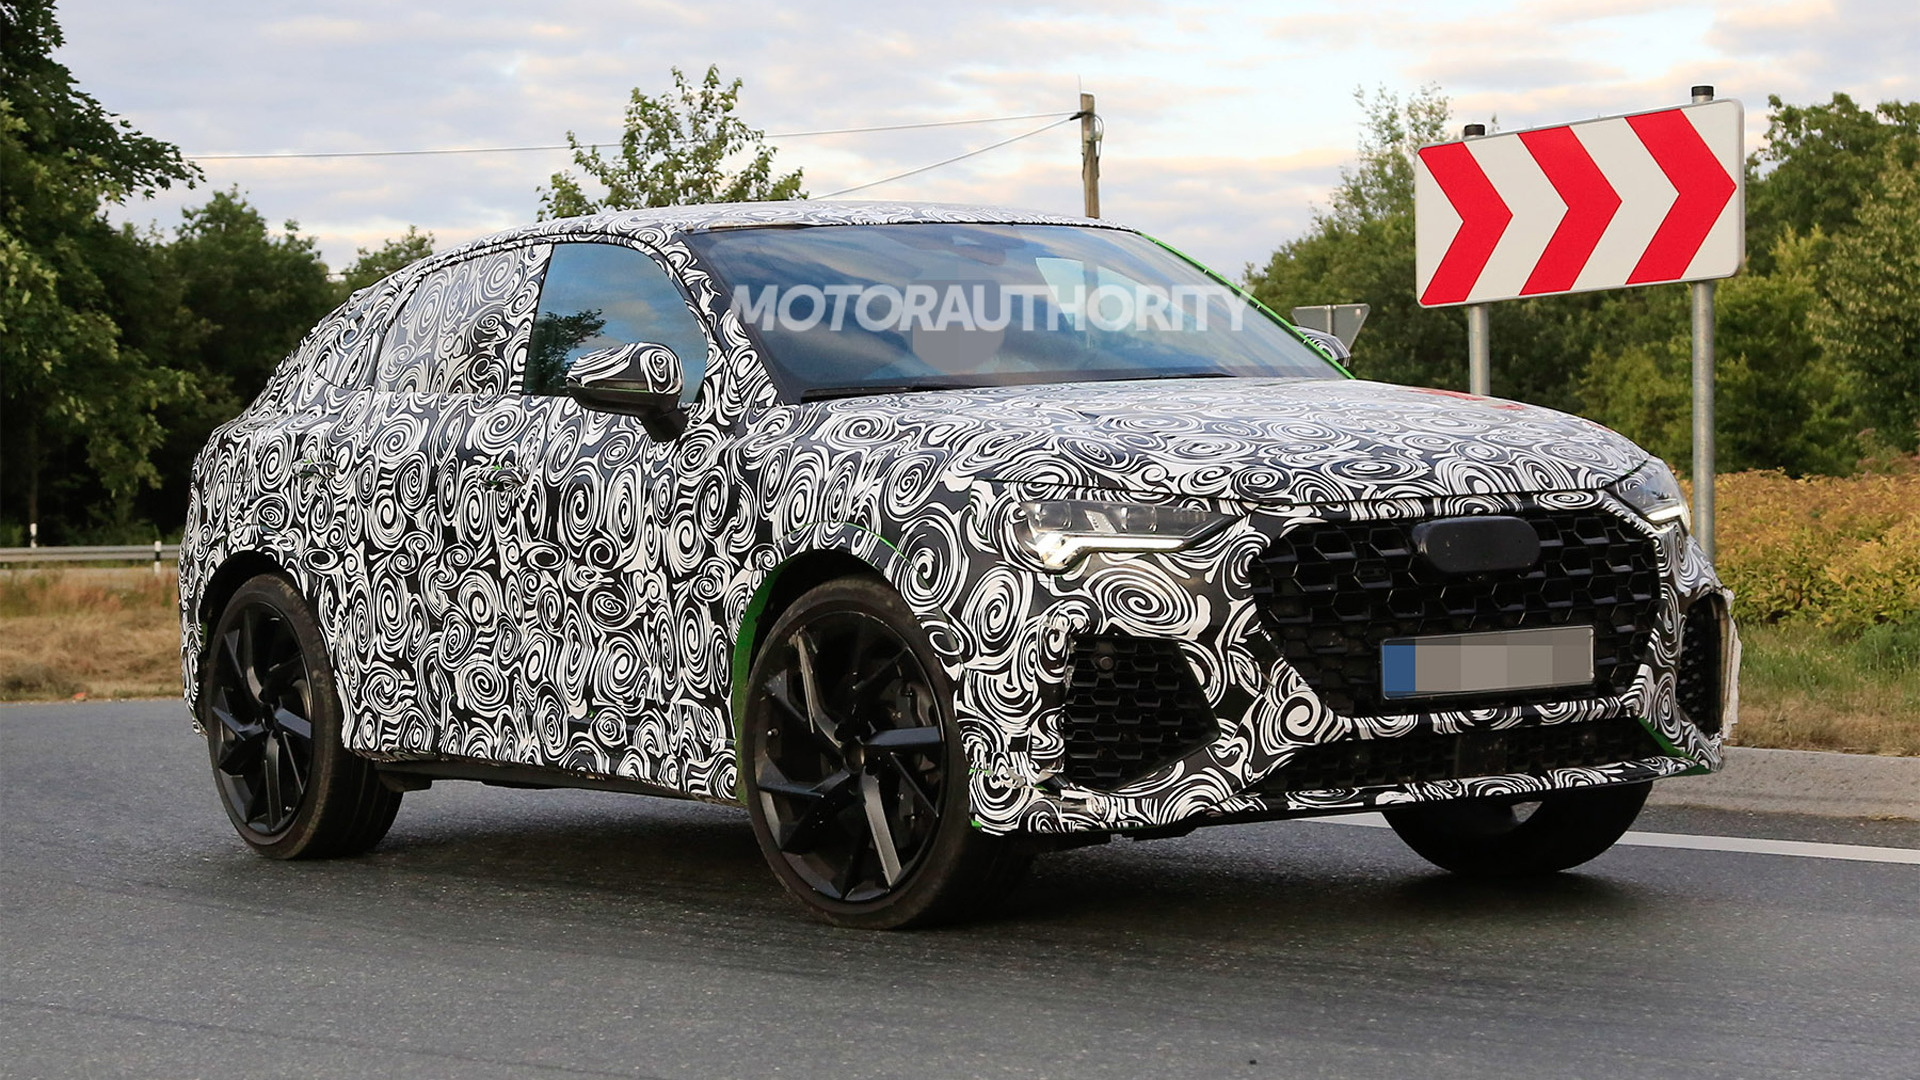 2020 Audi RS Q3 Sportback spy shots - Photo credit: S. Baldauf/SB-Medien